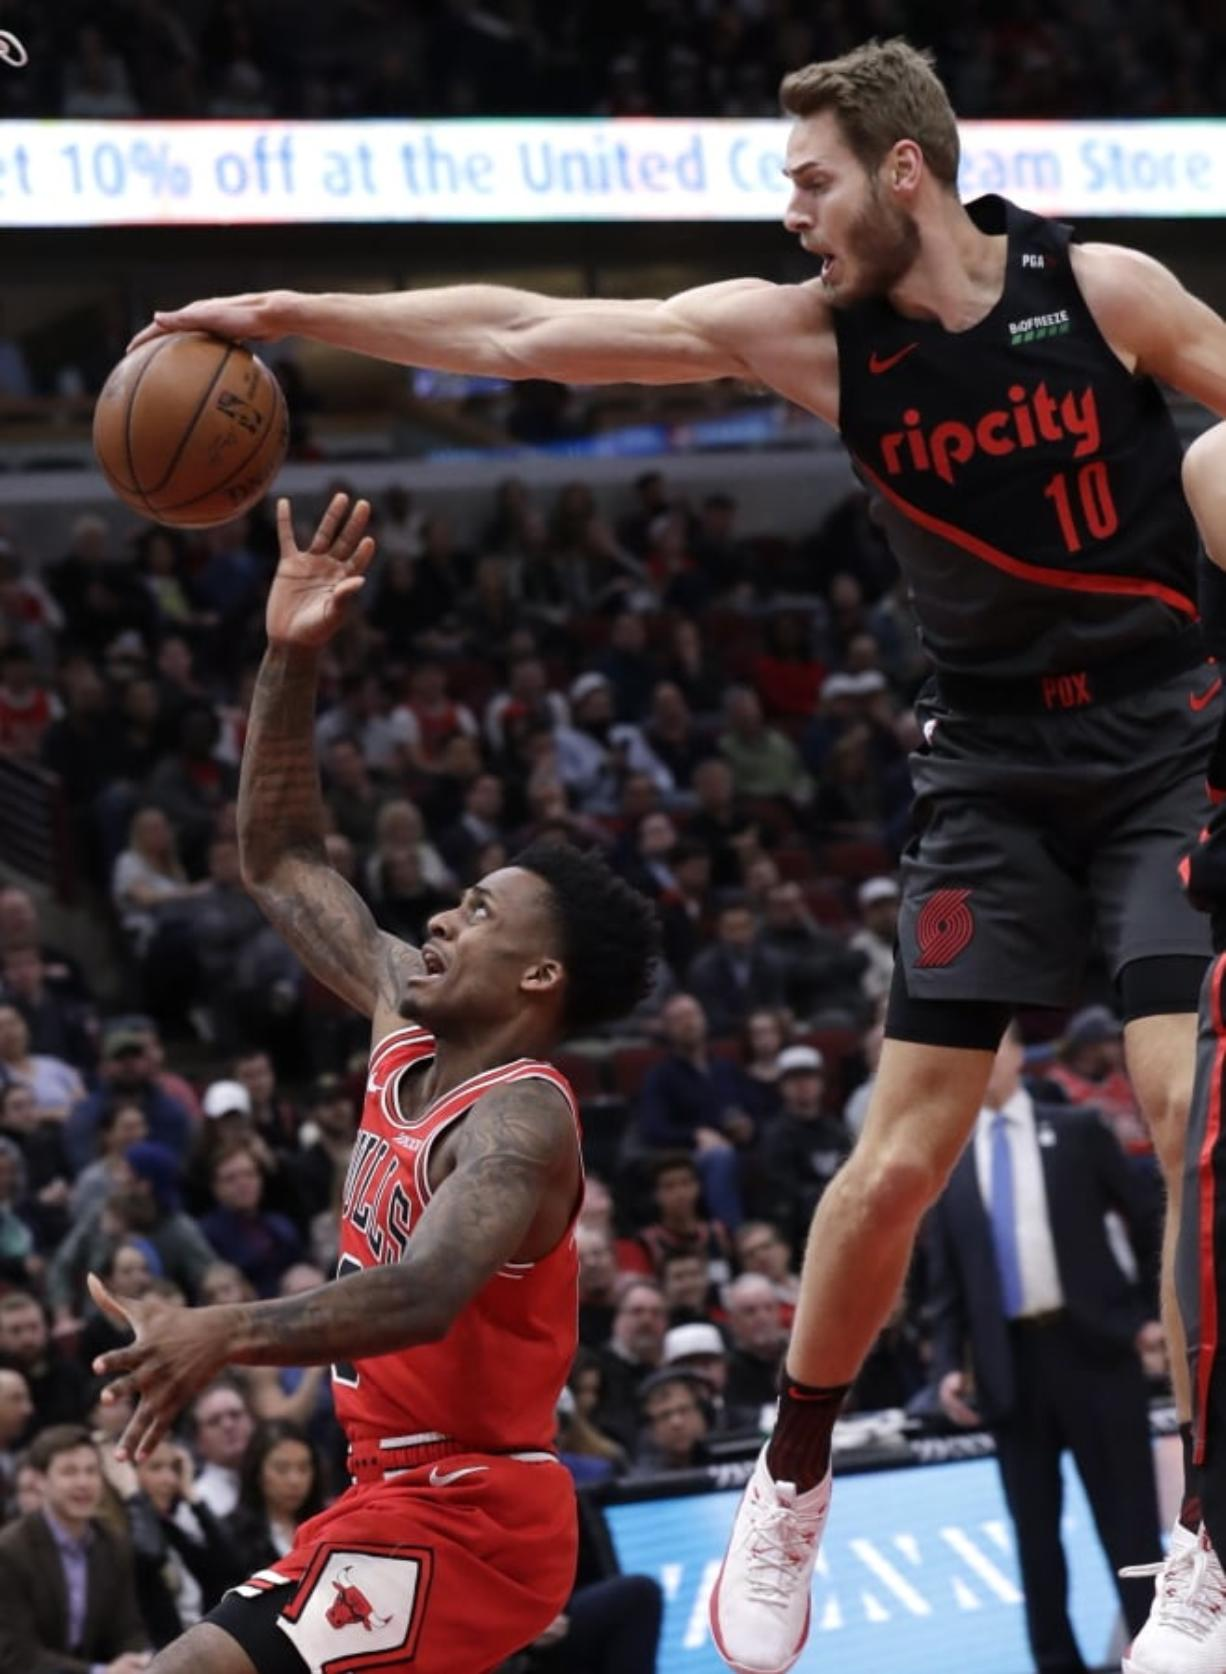 Portland Trail Blazers forward Jake Layman, right, blocks a shot by Chicago Bulls guard Antonio Blakeney during the first half of an NBA basketball game Wednesday, March 27, 2019, in Chicago. (AP Photo/Nam Y.